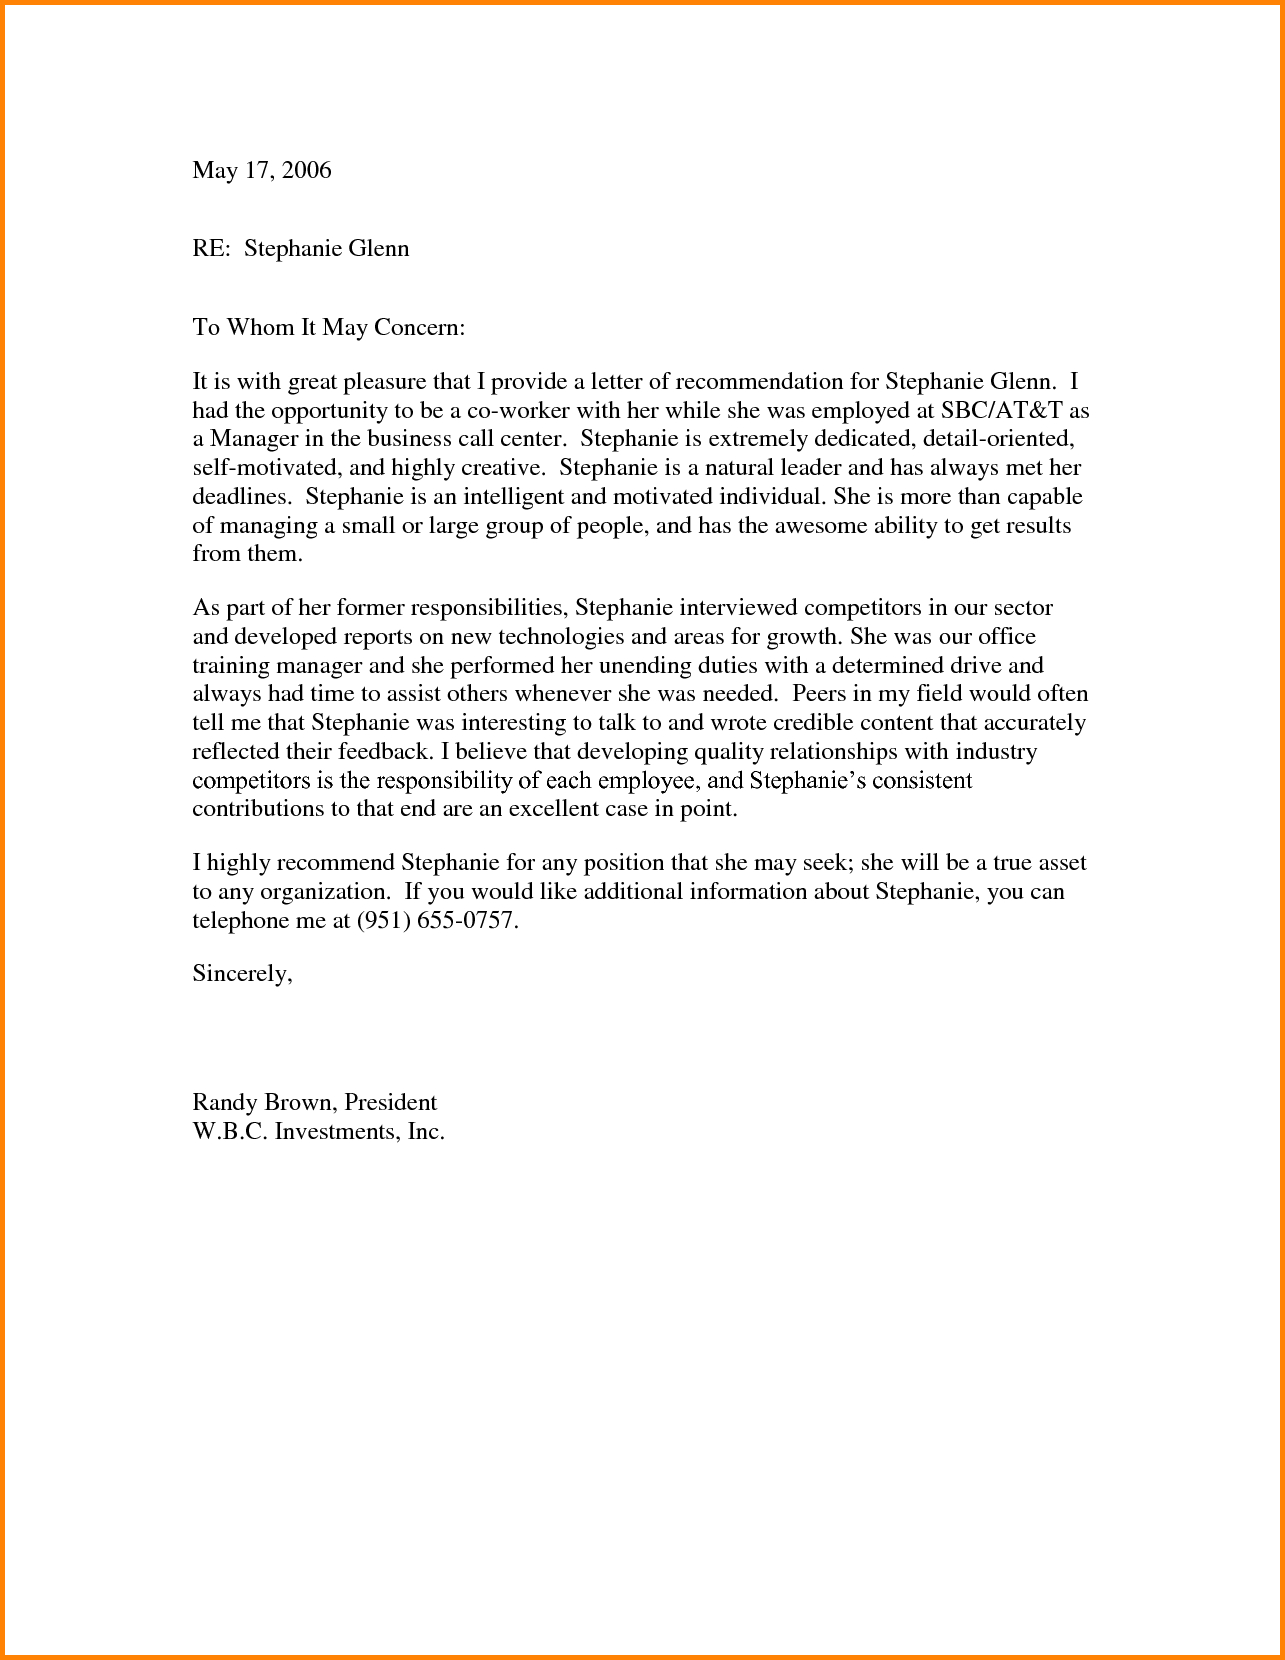 Template for Writing A Letter Of Recommendation for A Coworker - Writing Letter Re Mendation forlleague Graduate School